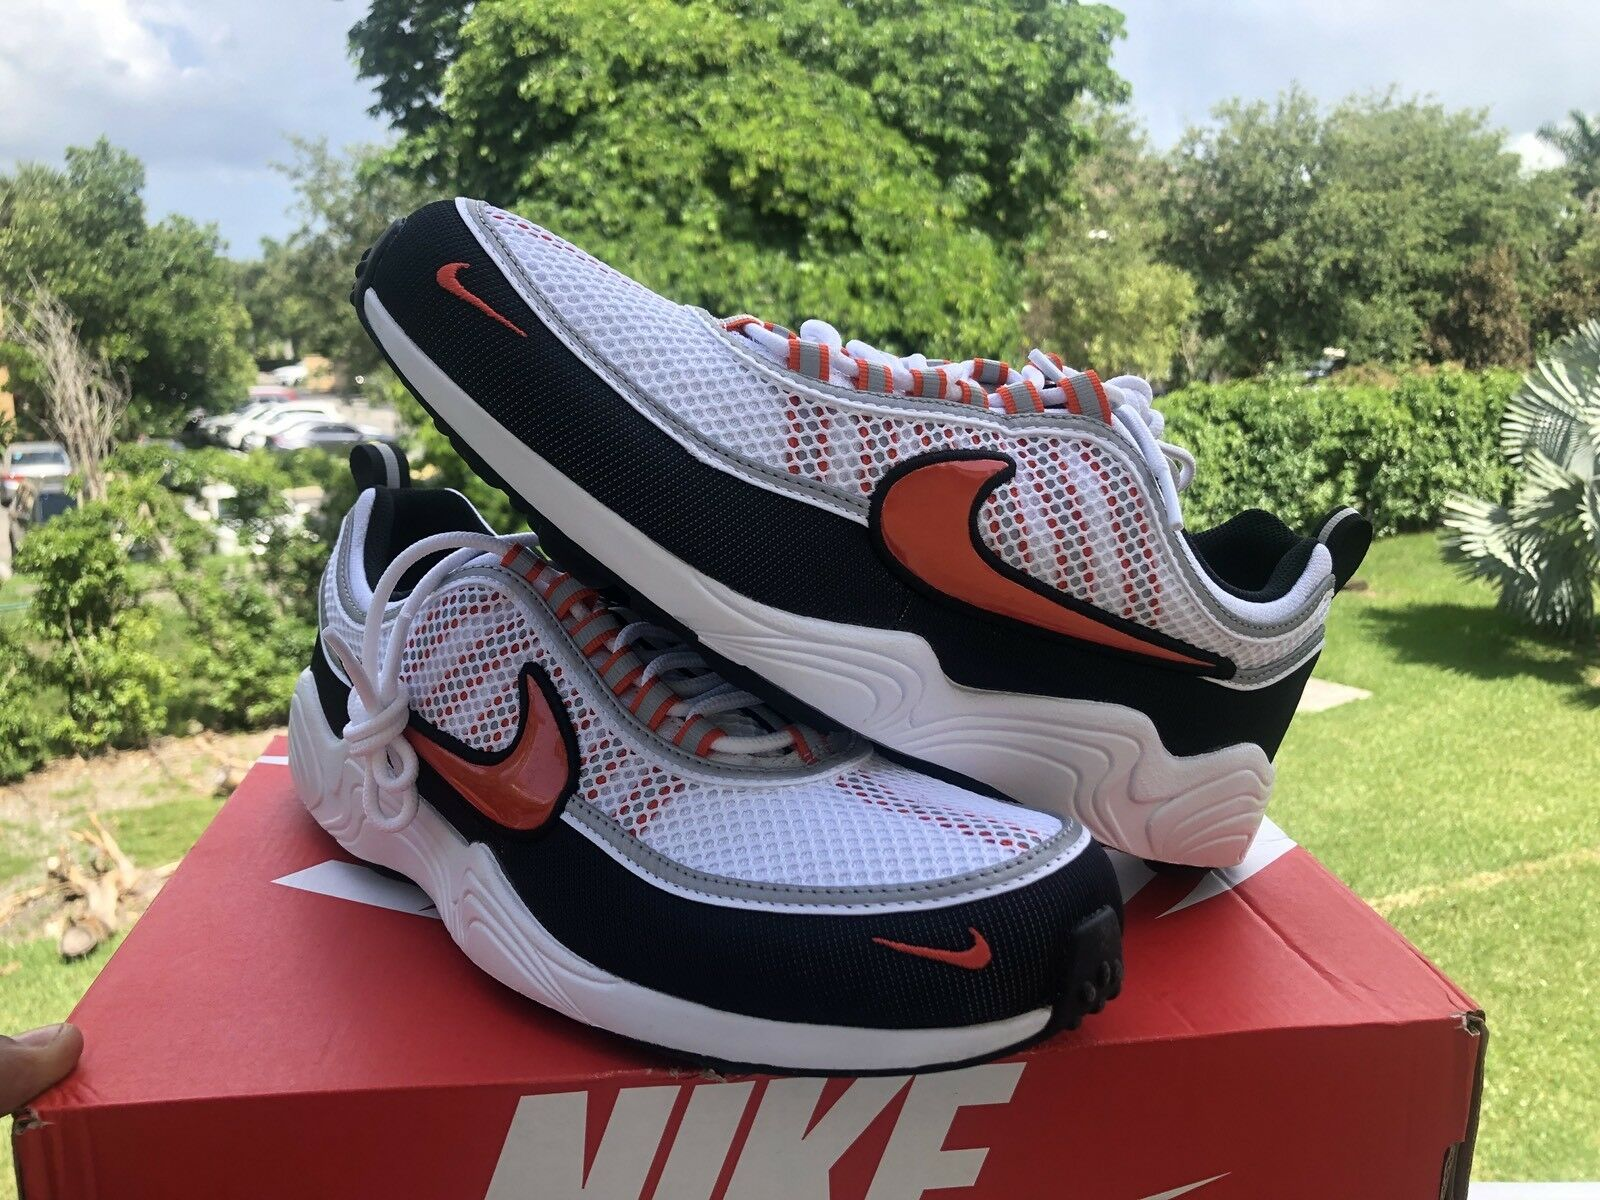 The latest discount shoes for men and women Nike Air Zoom Spiridon 16 White Team Orange Black Comfortable